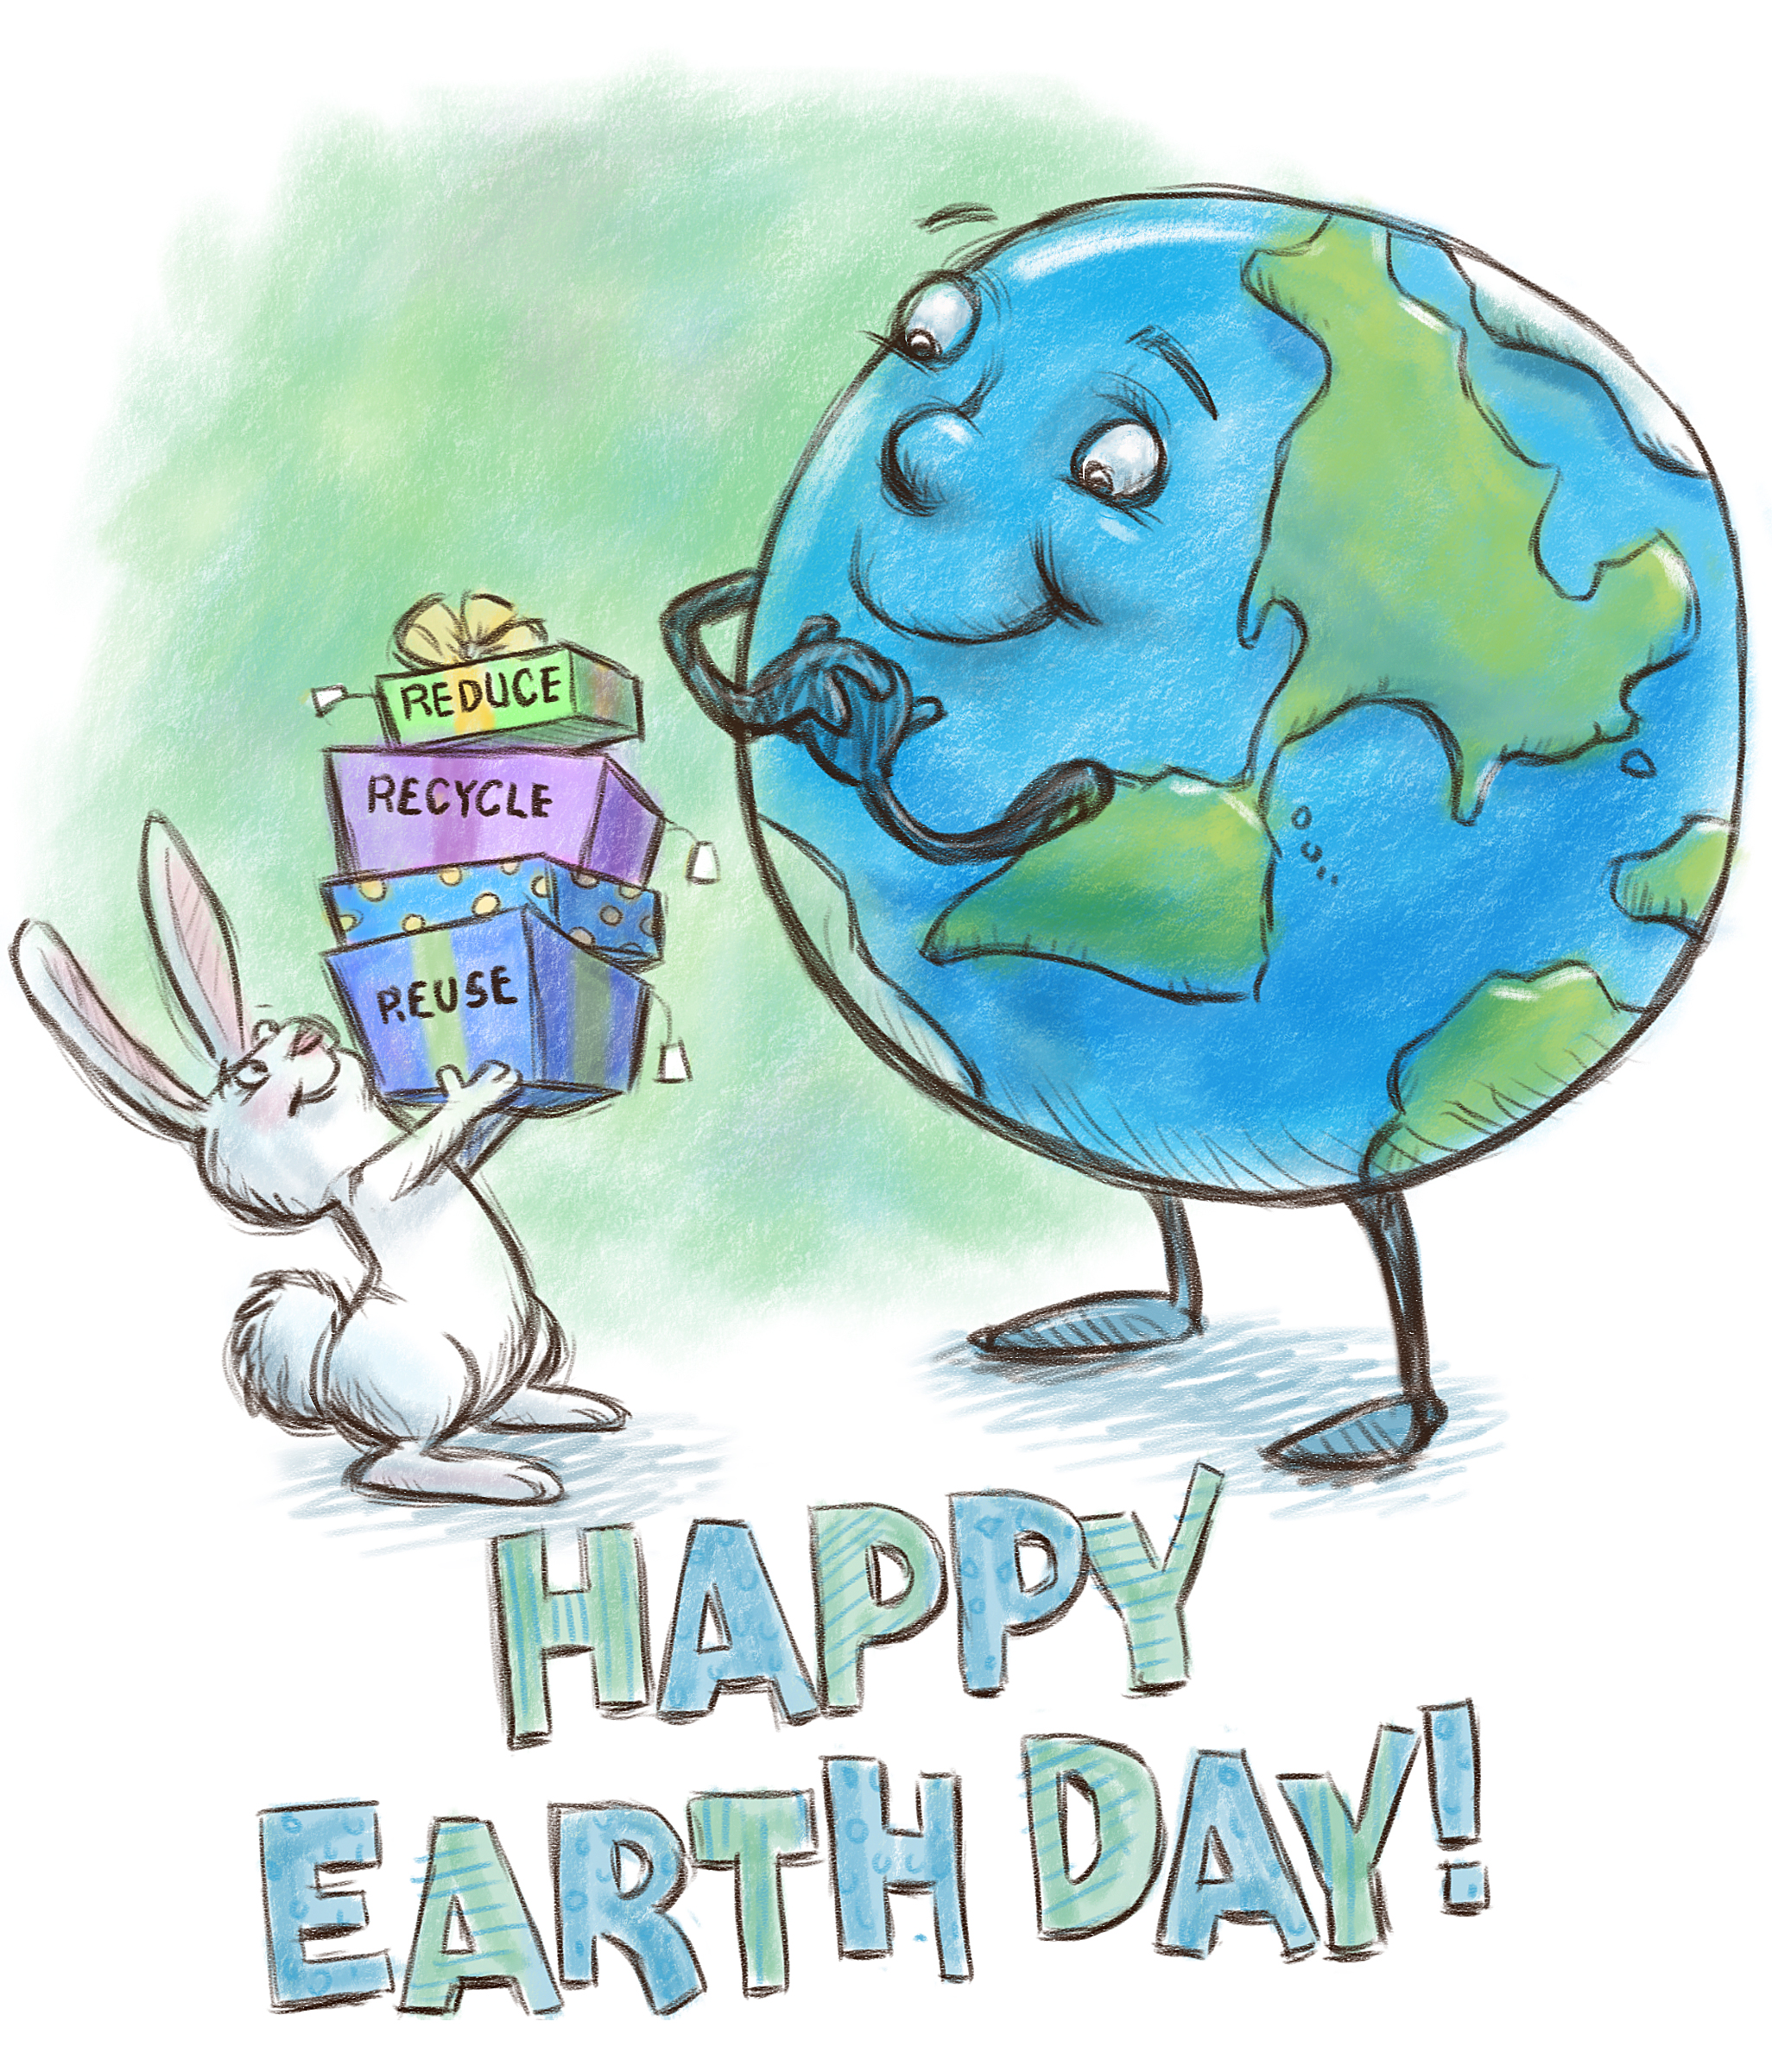 Earth Day Drawing at GetDrawings.com | Free for personal use Earth ...